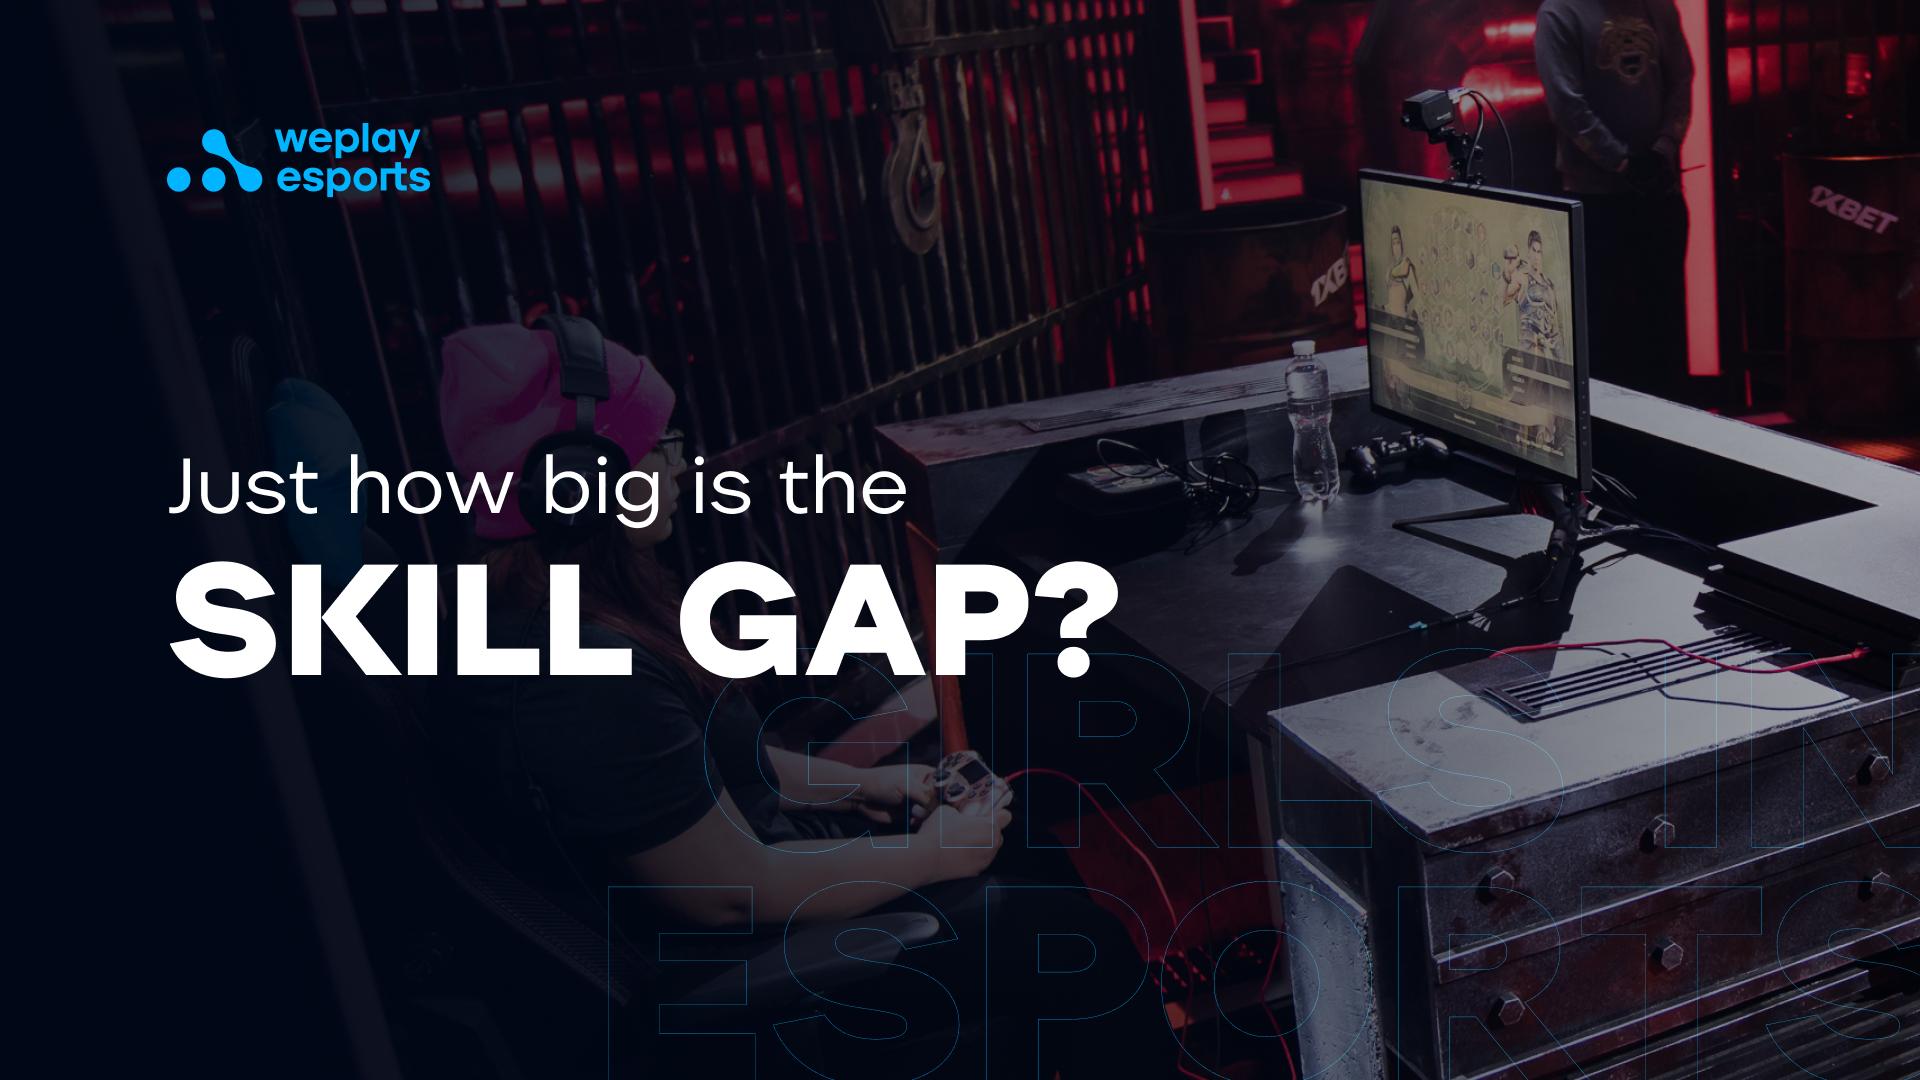 Just how big is the skill gap?